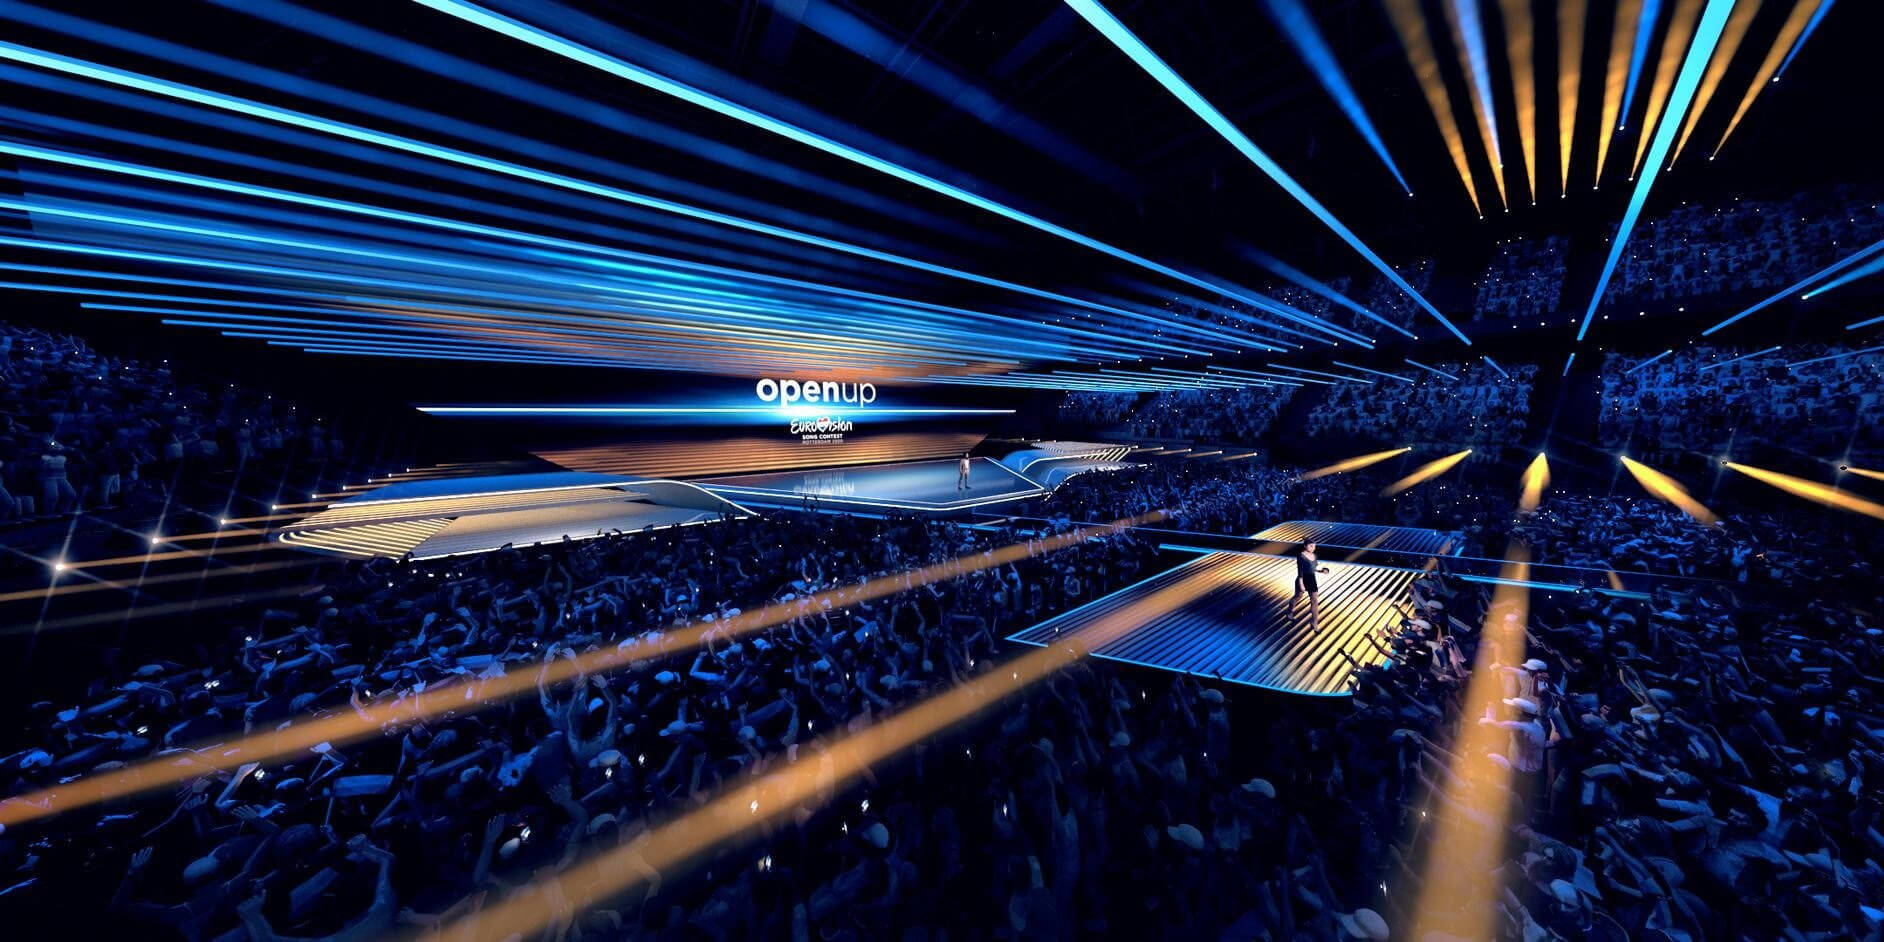 Eurovision 2020: Stage design revealed for Rotterdam